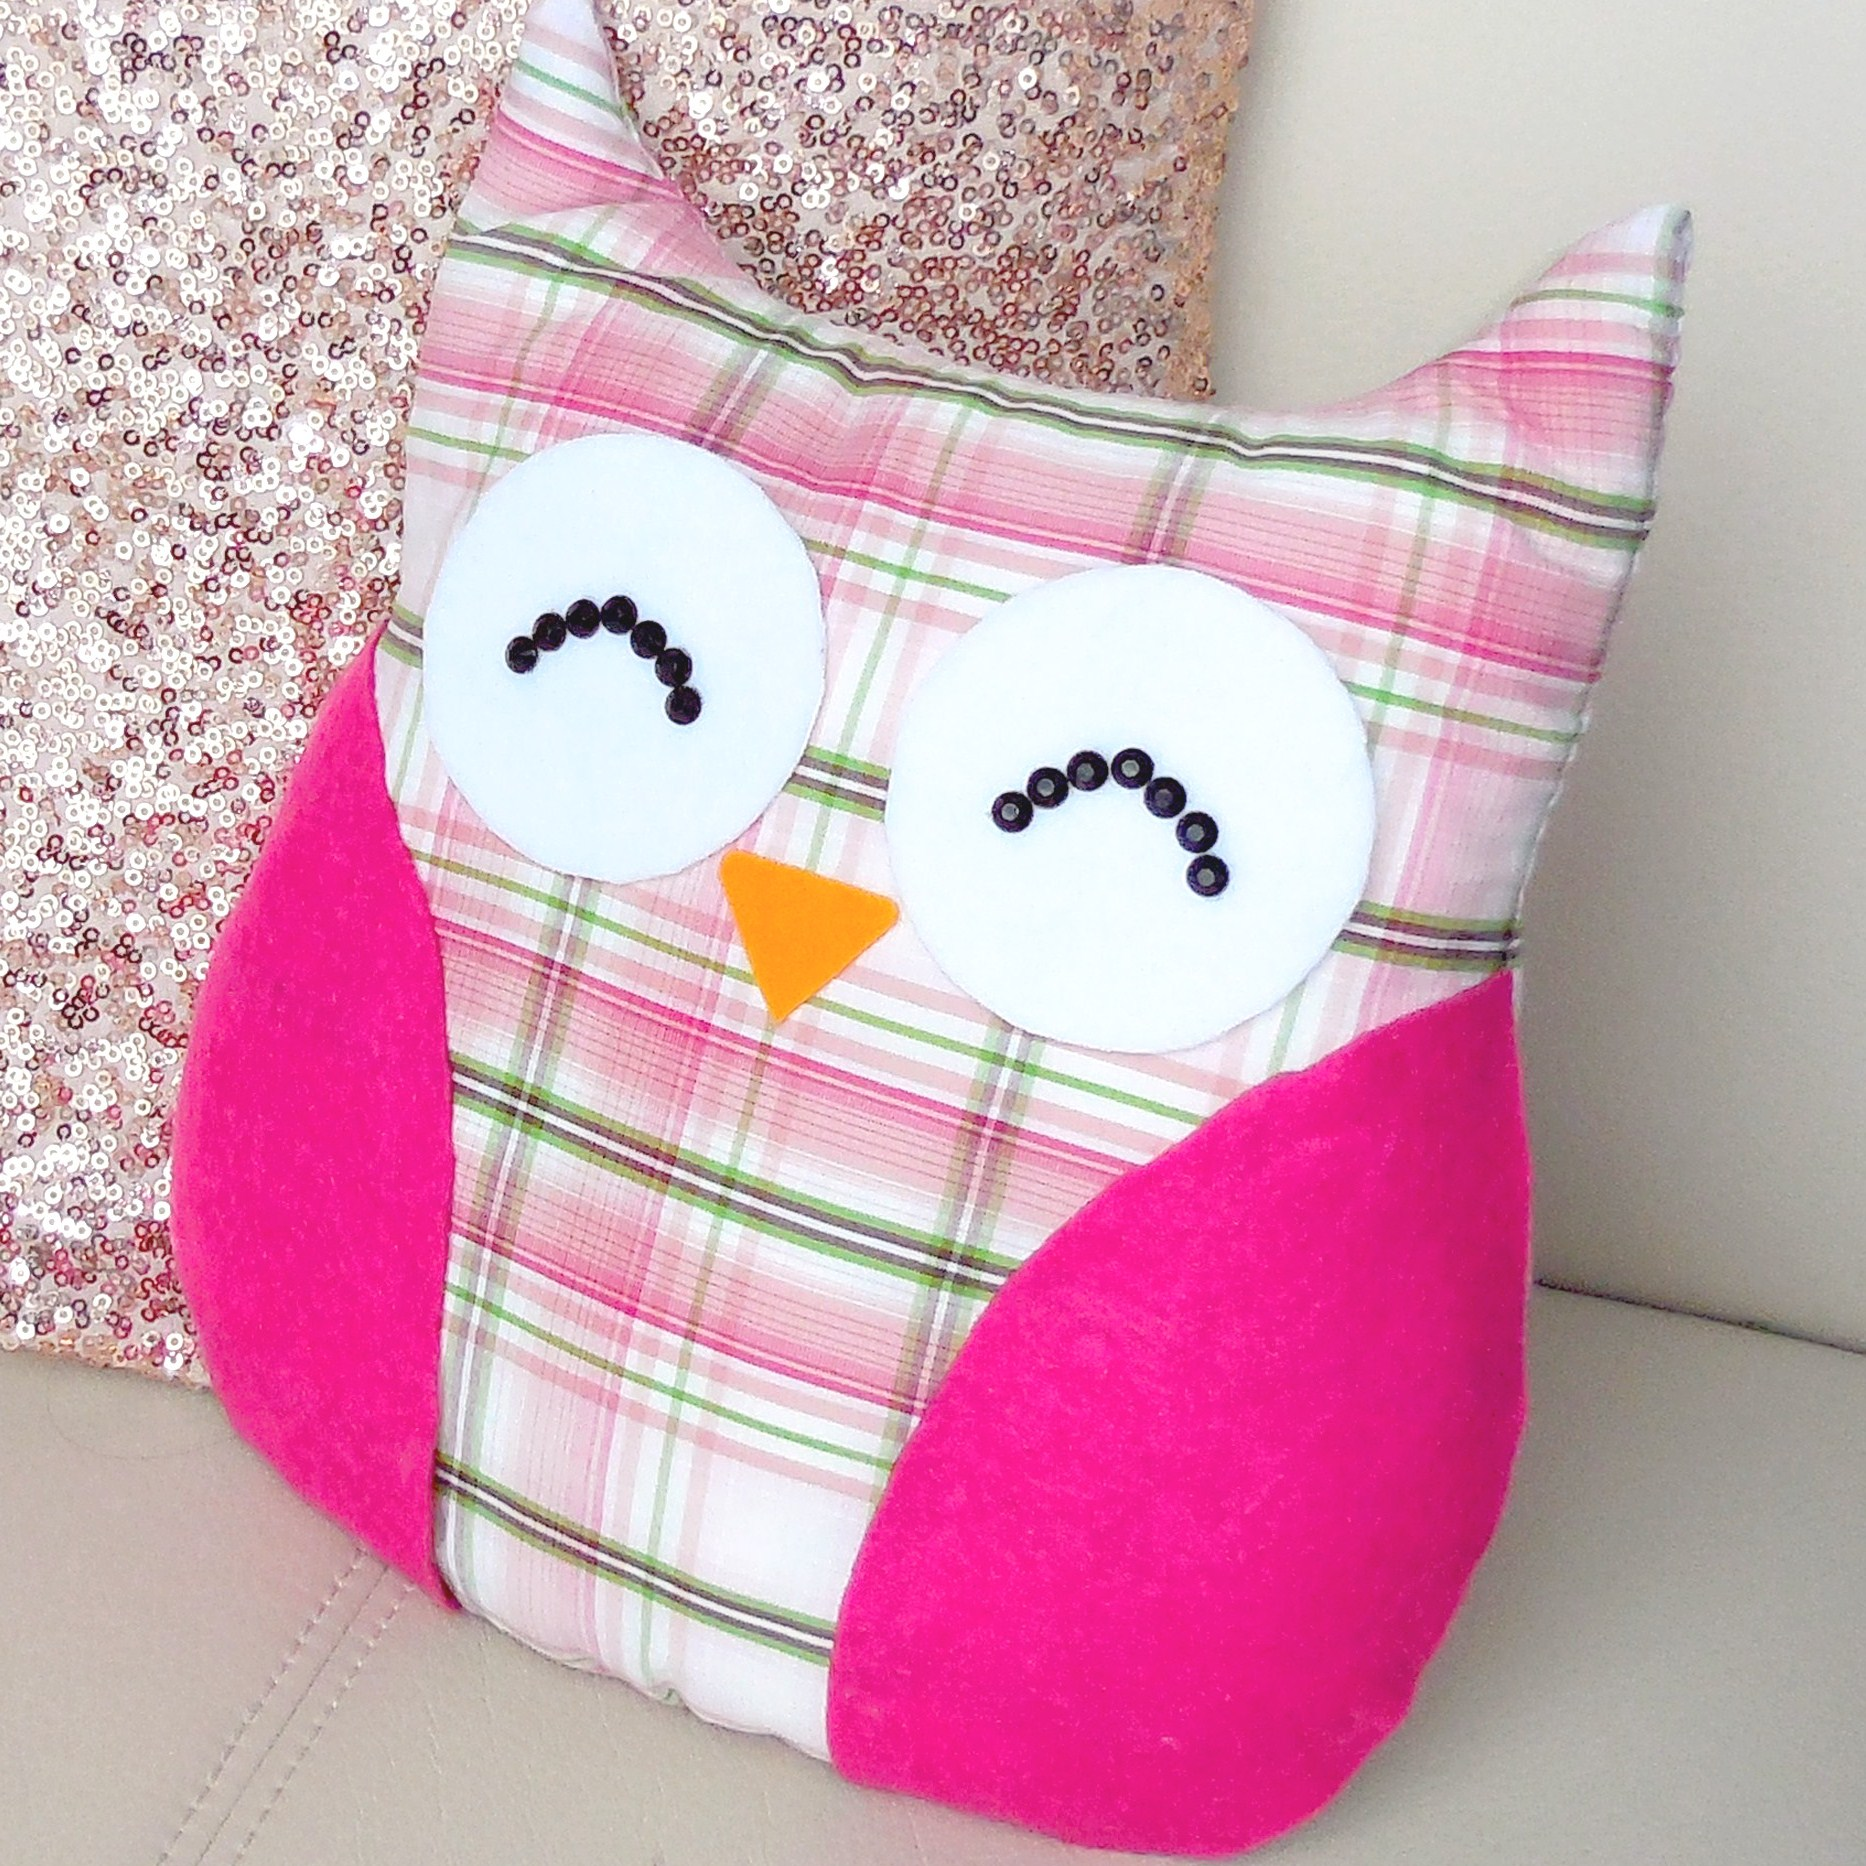 DIY ROOM DECOR ❤ Easy owl Pillow! (Sew/no sew)